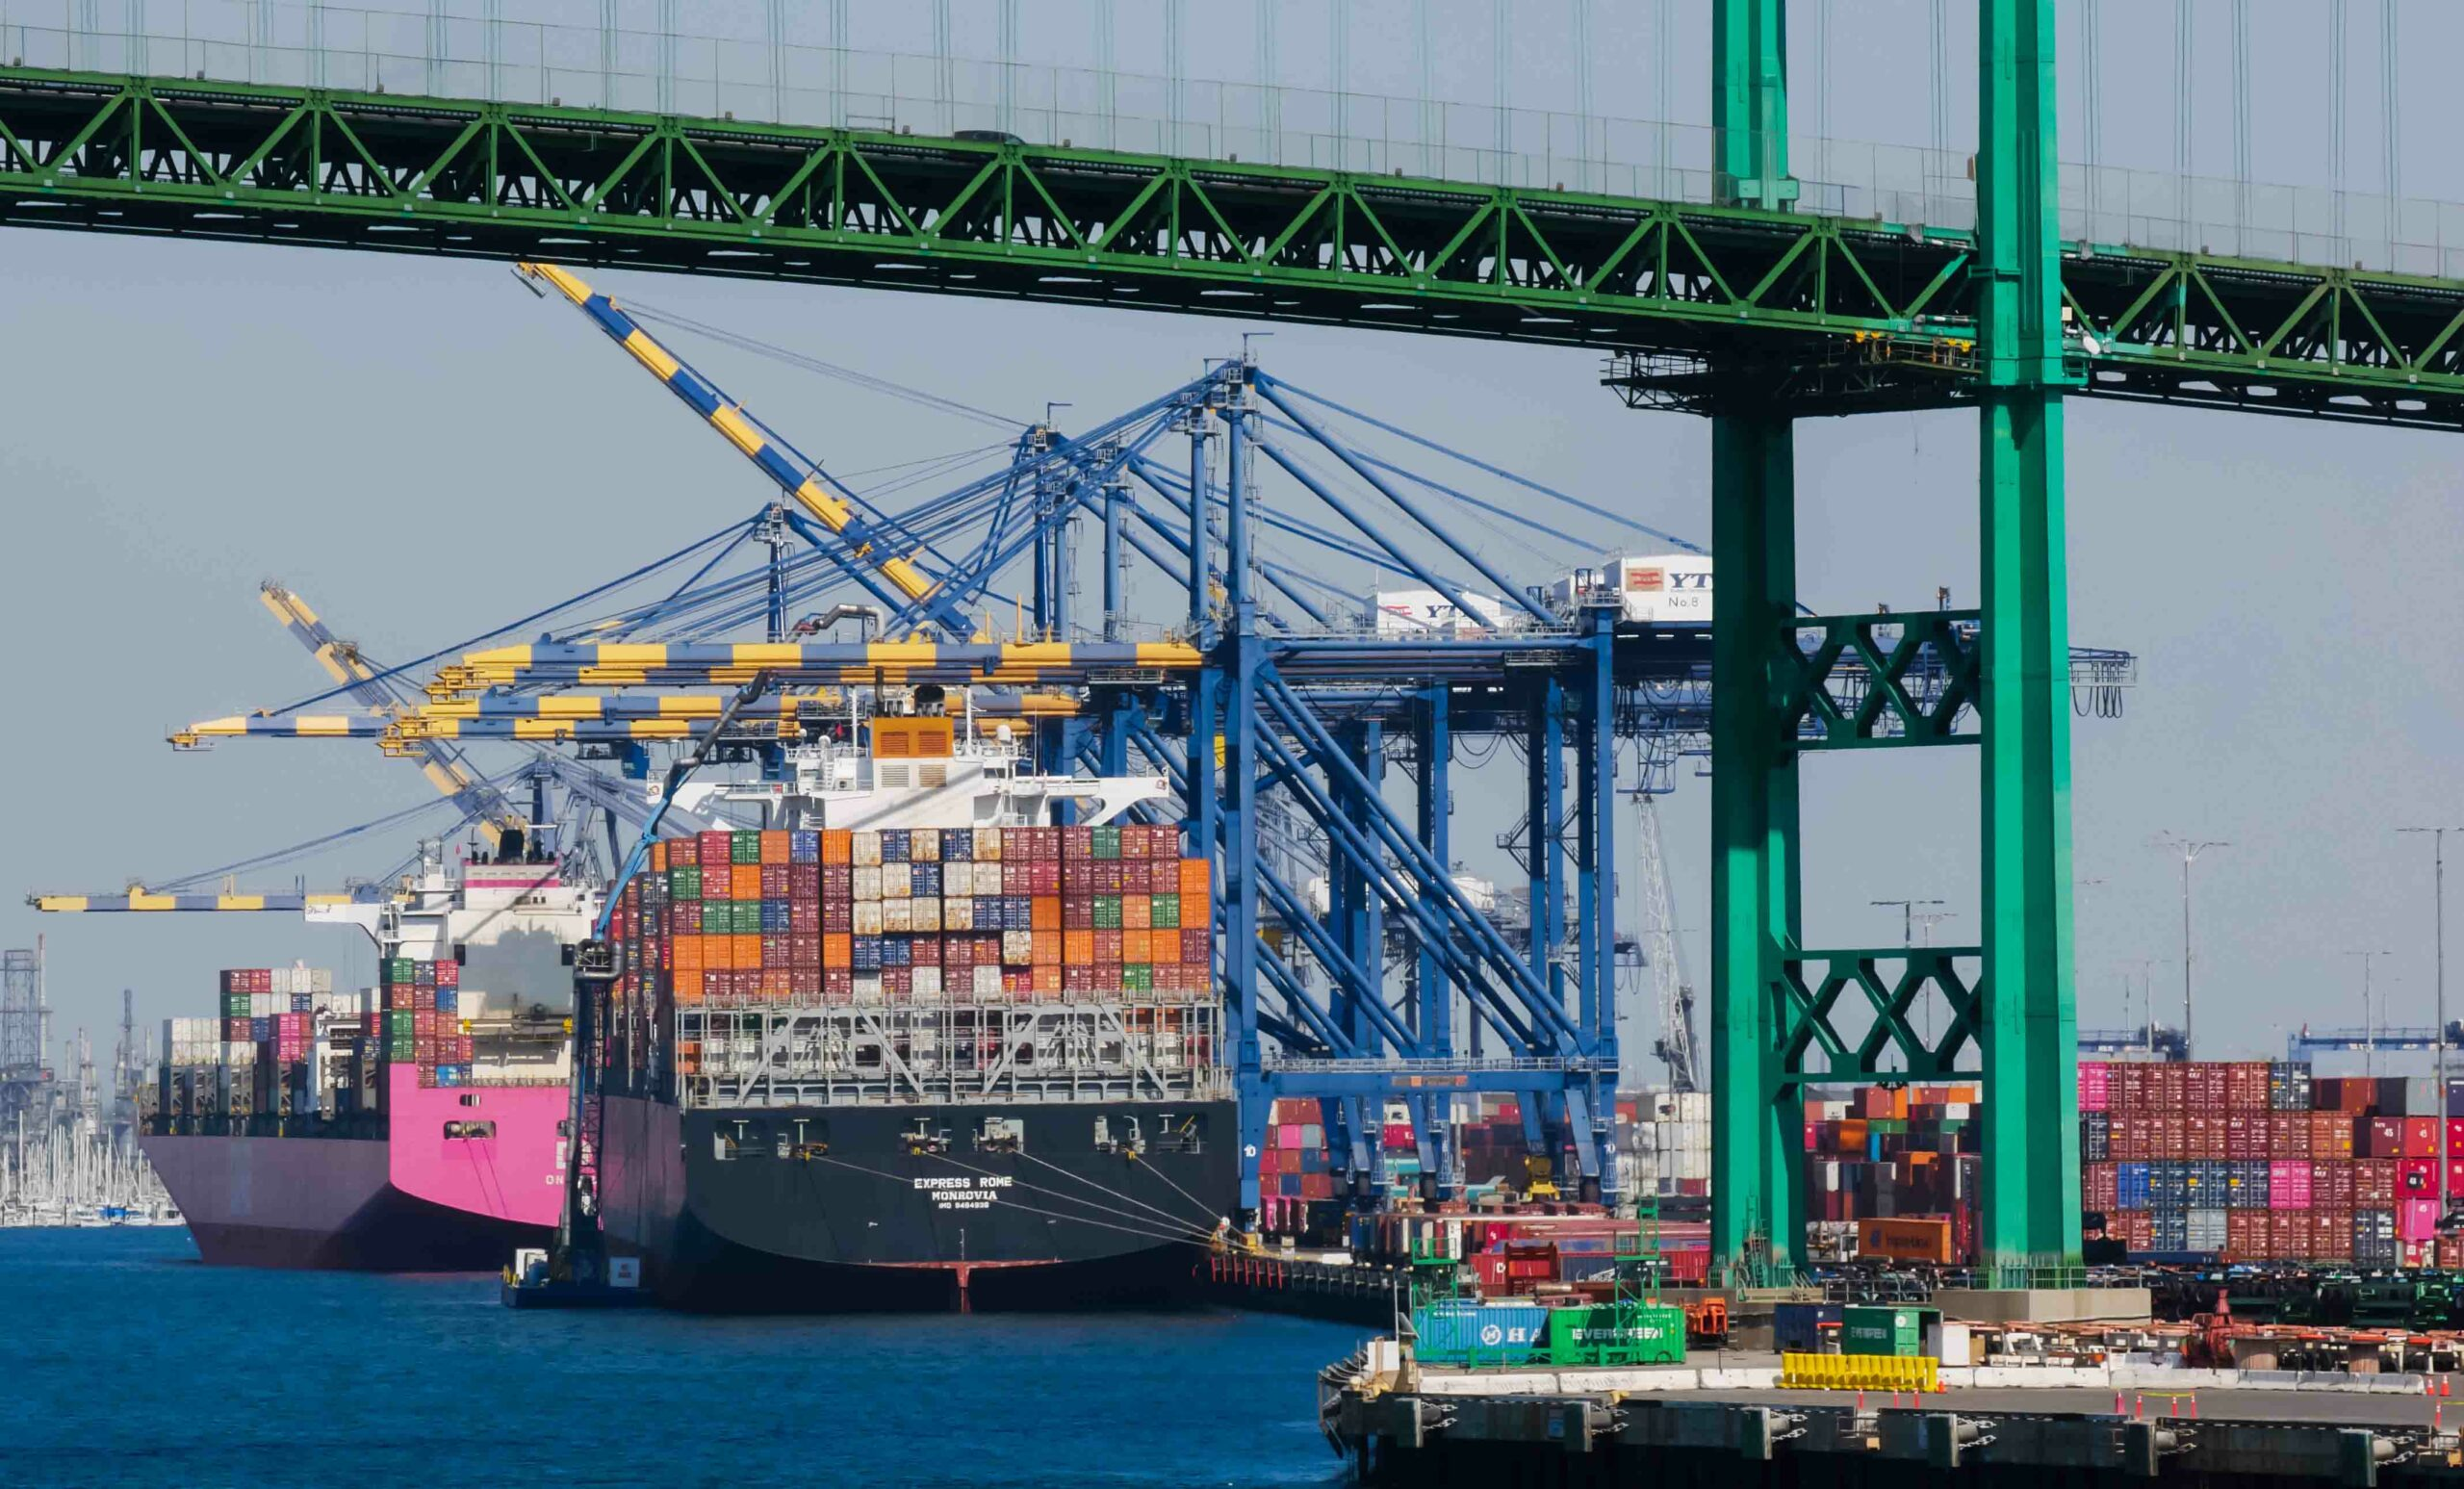 Los Angeles Port Logjam Has Enough Containers to Cross Half the U.S. Atlas logistic network